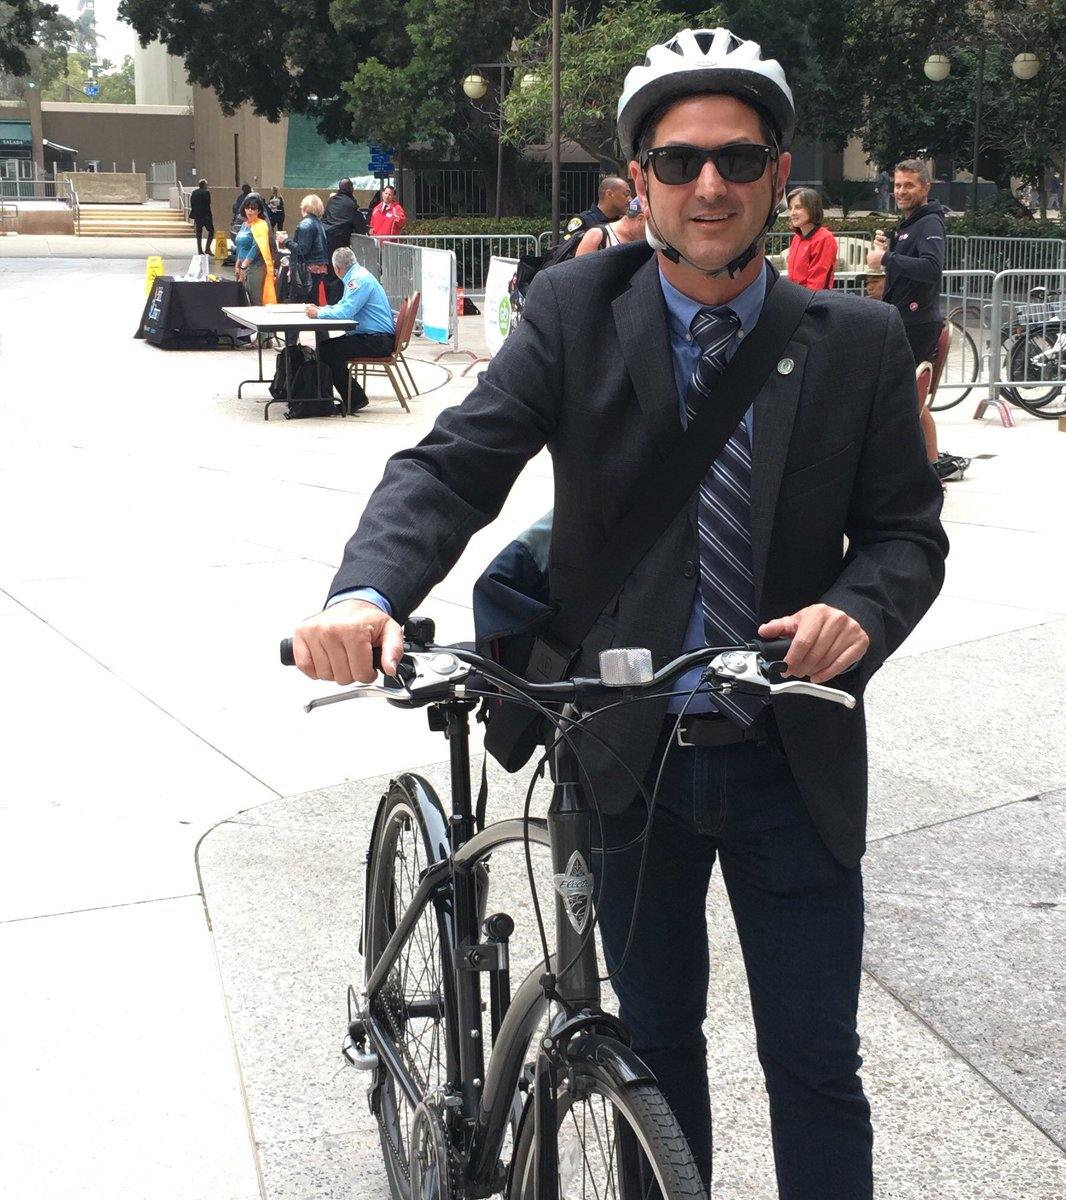 Switching up the commute for Transit Tuesday and biking to work